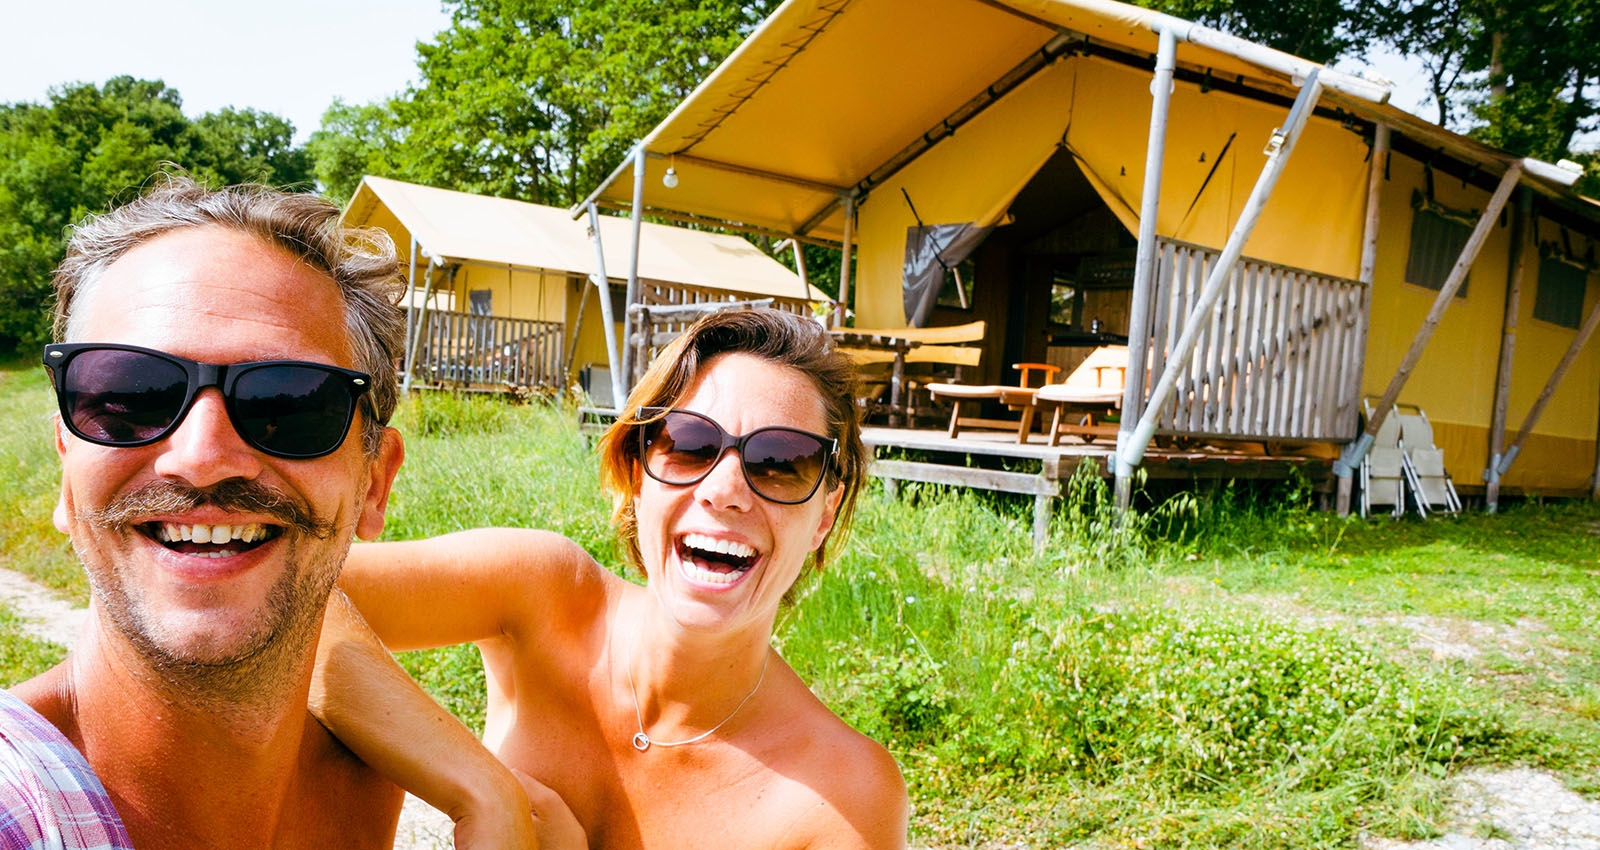 The things we often miss while glamping